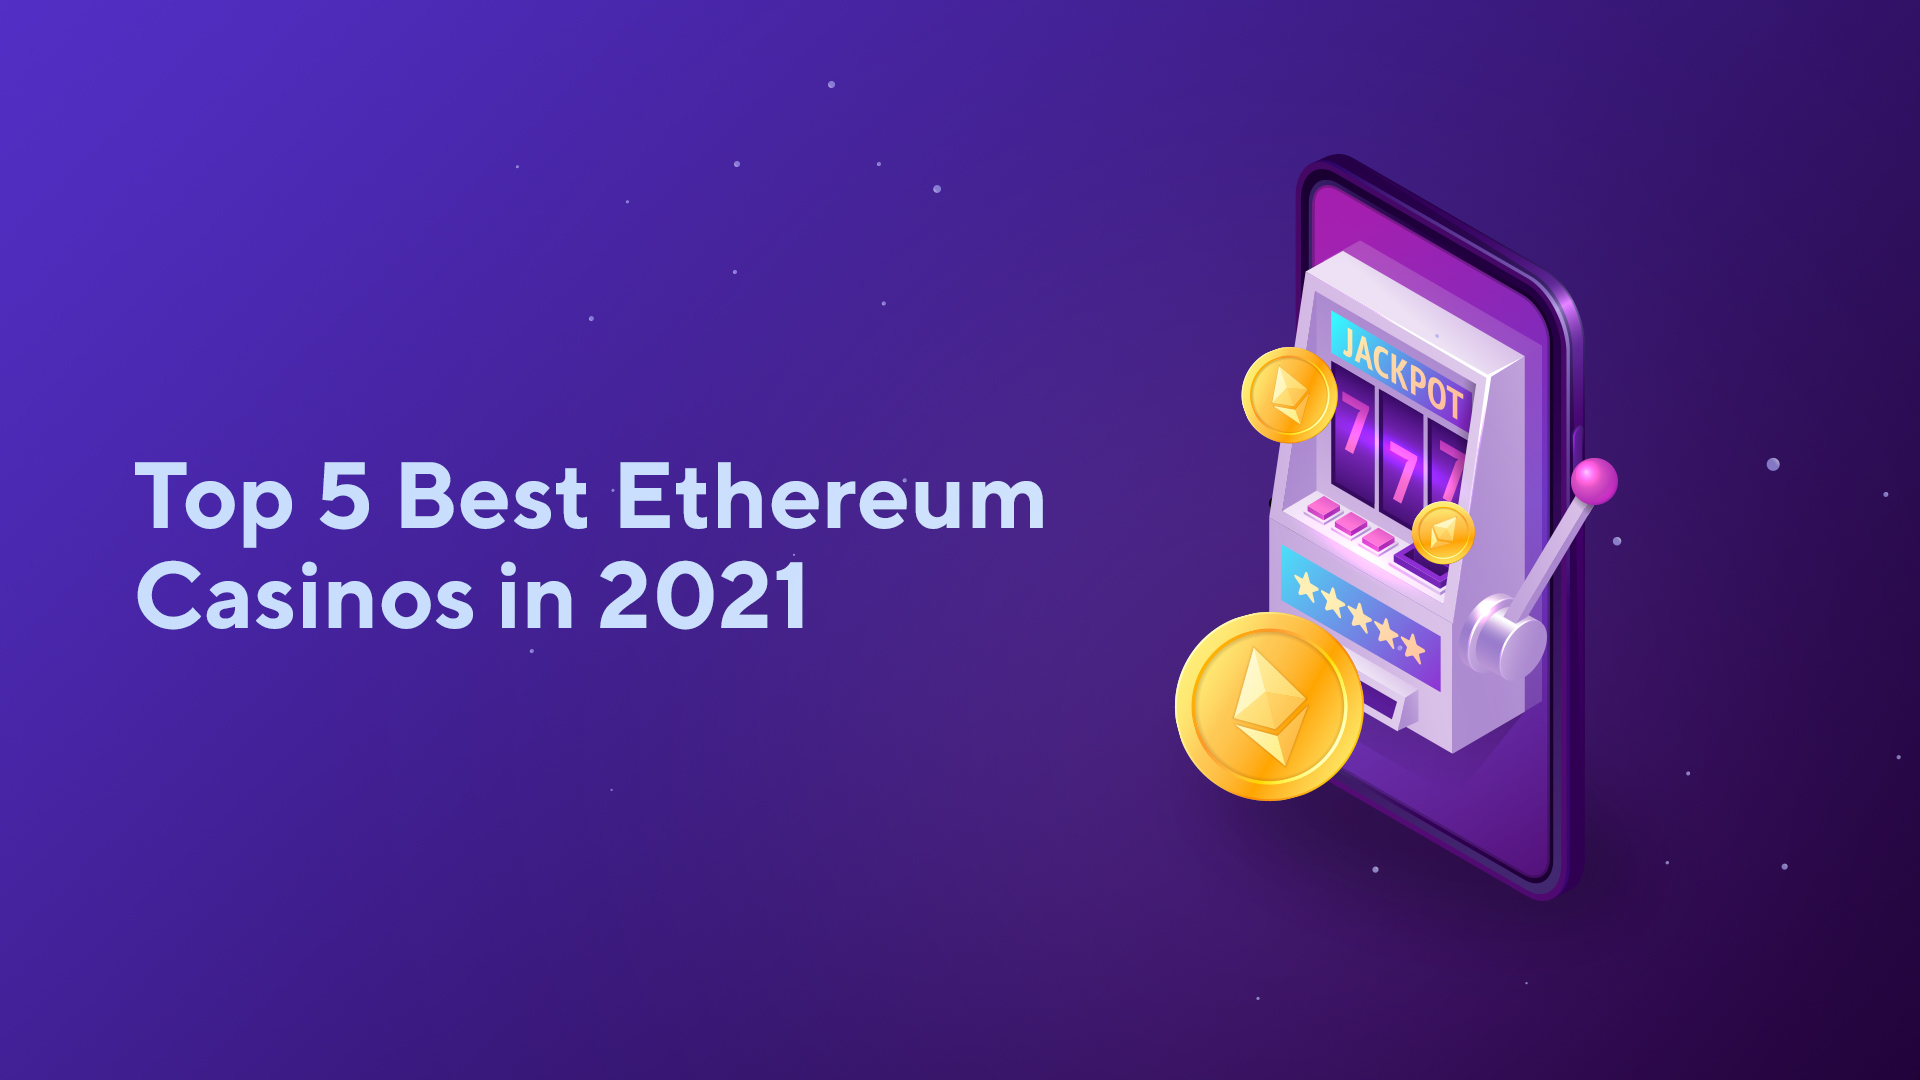 Top 5 Best Ethereum Casinos in 2021